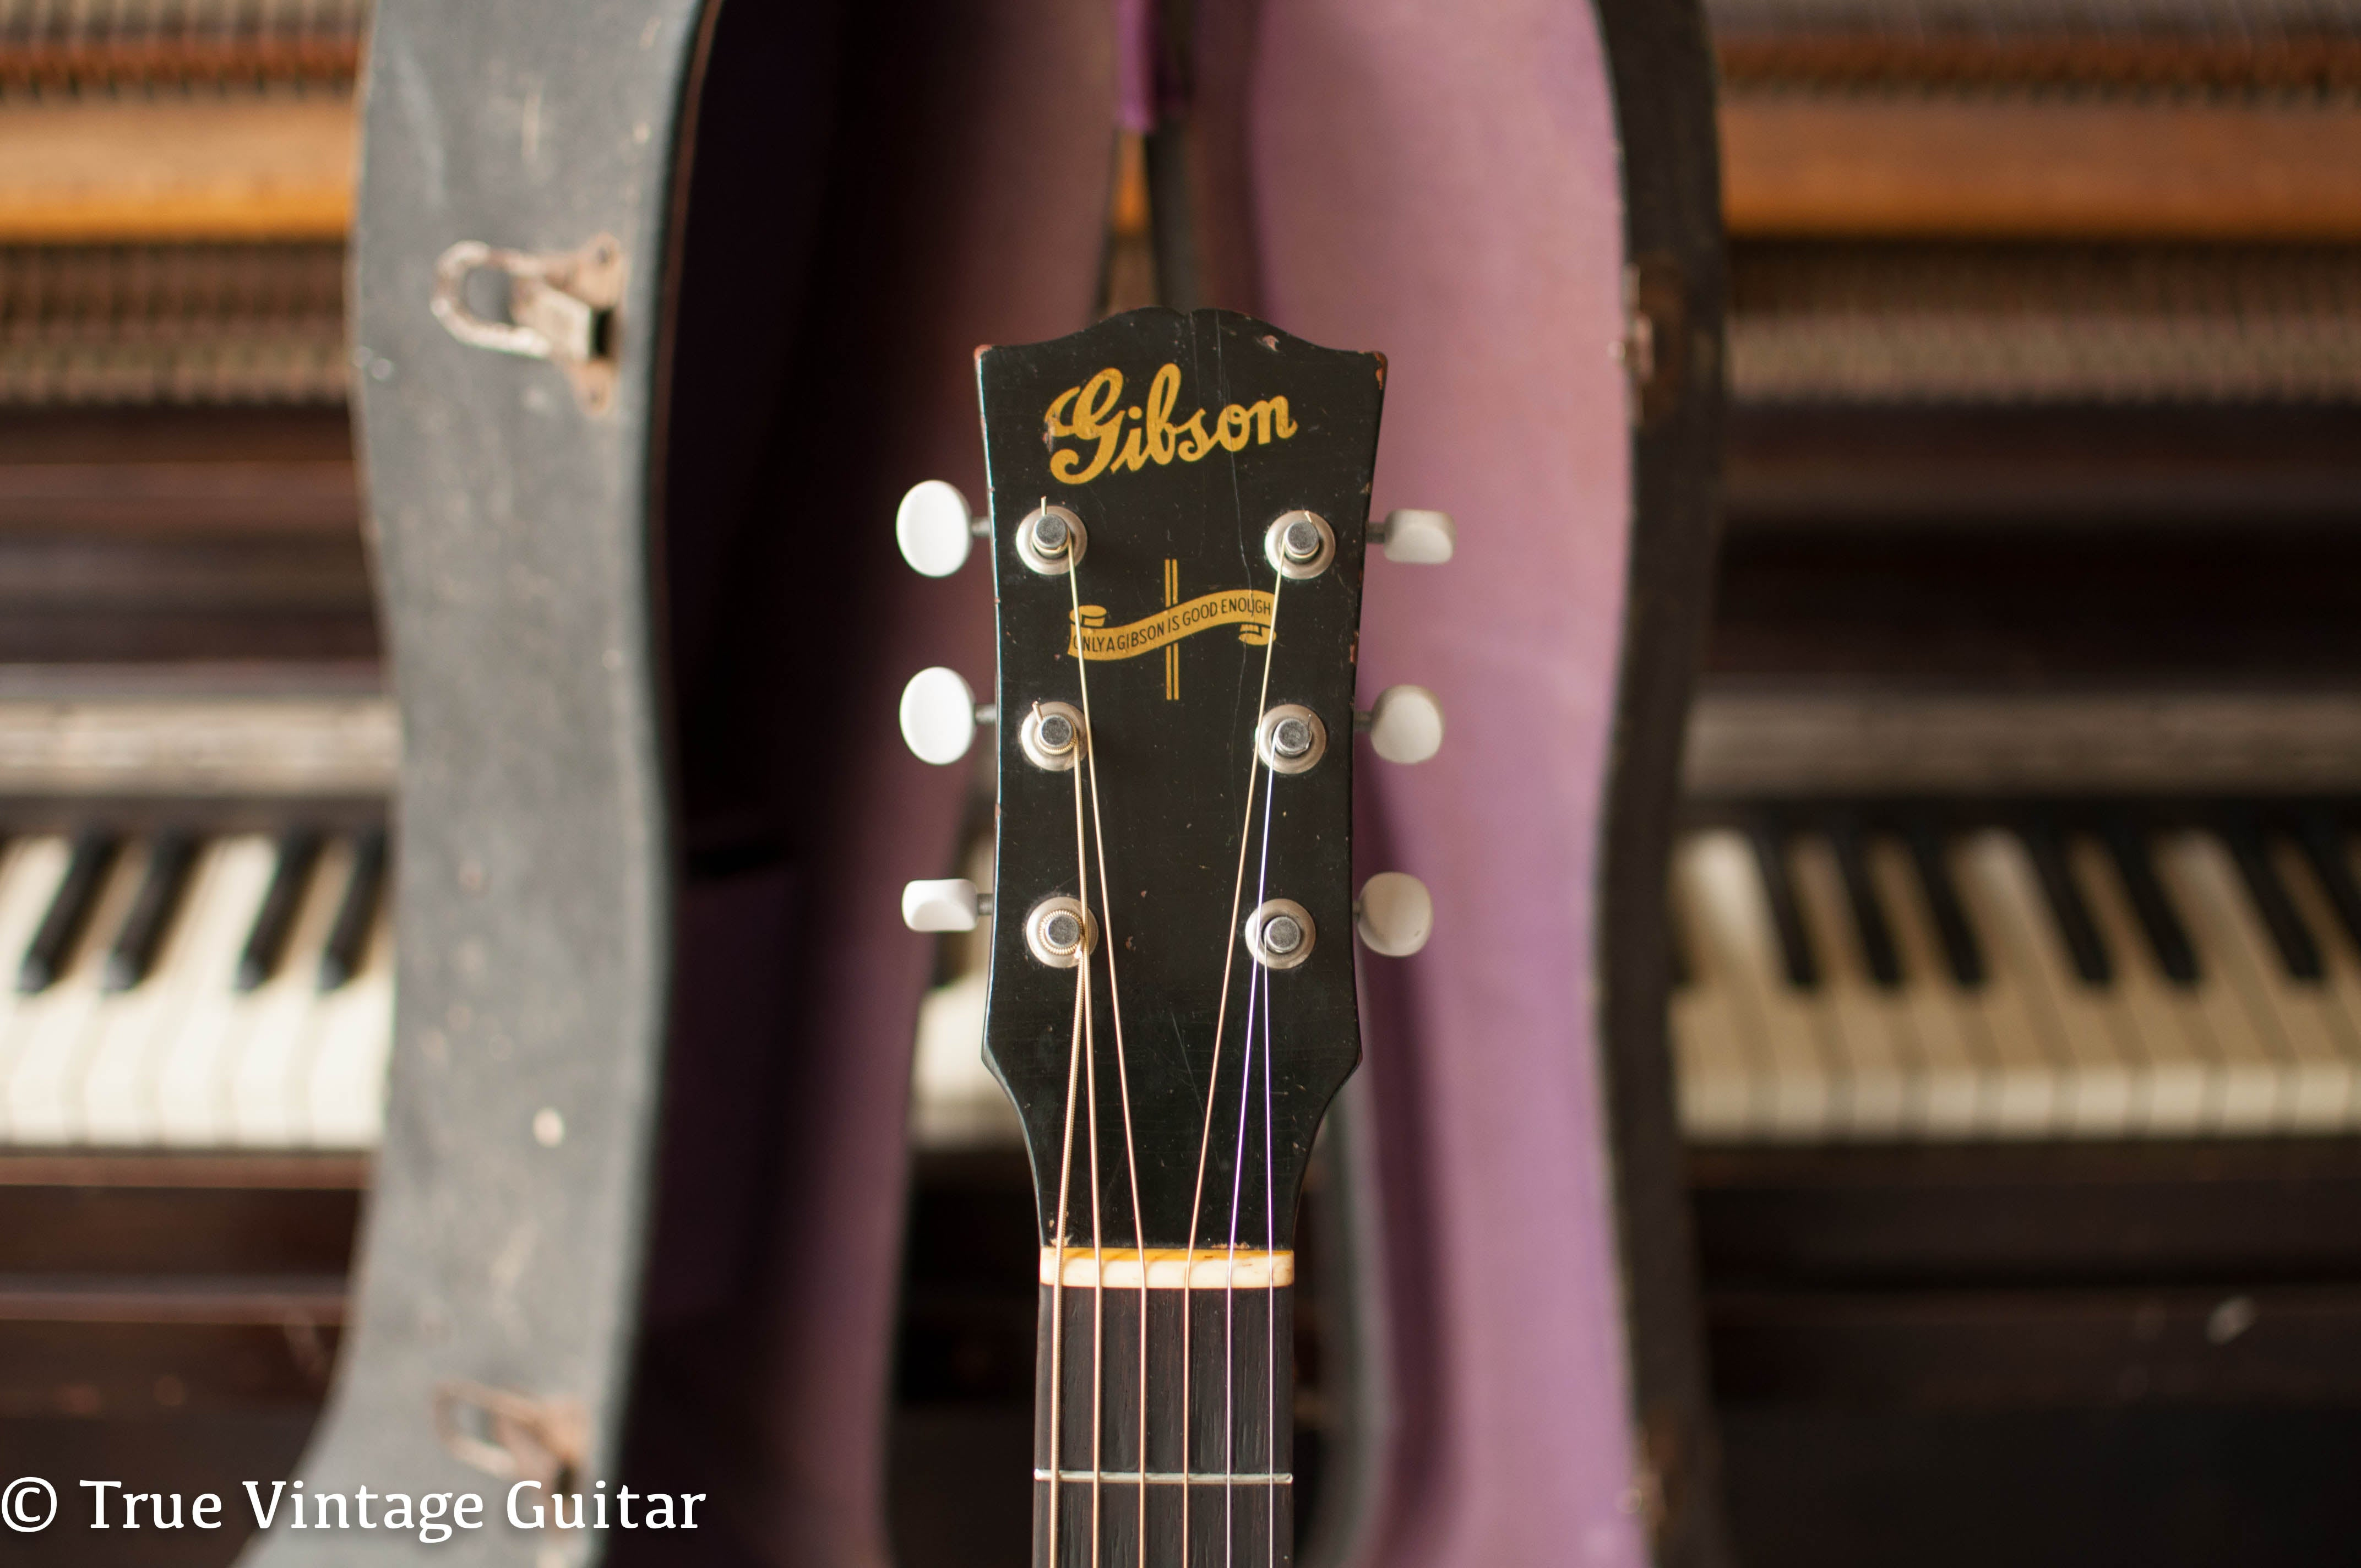 Banner Gibson headstock, Only a Gibson is good enough, J-45 guitar